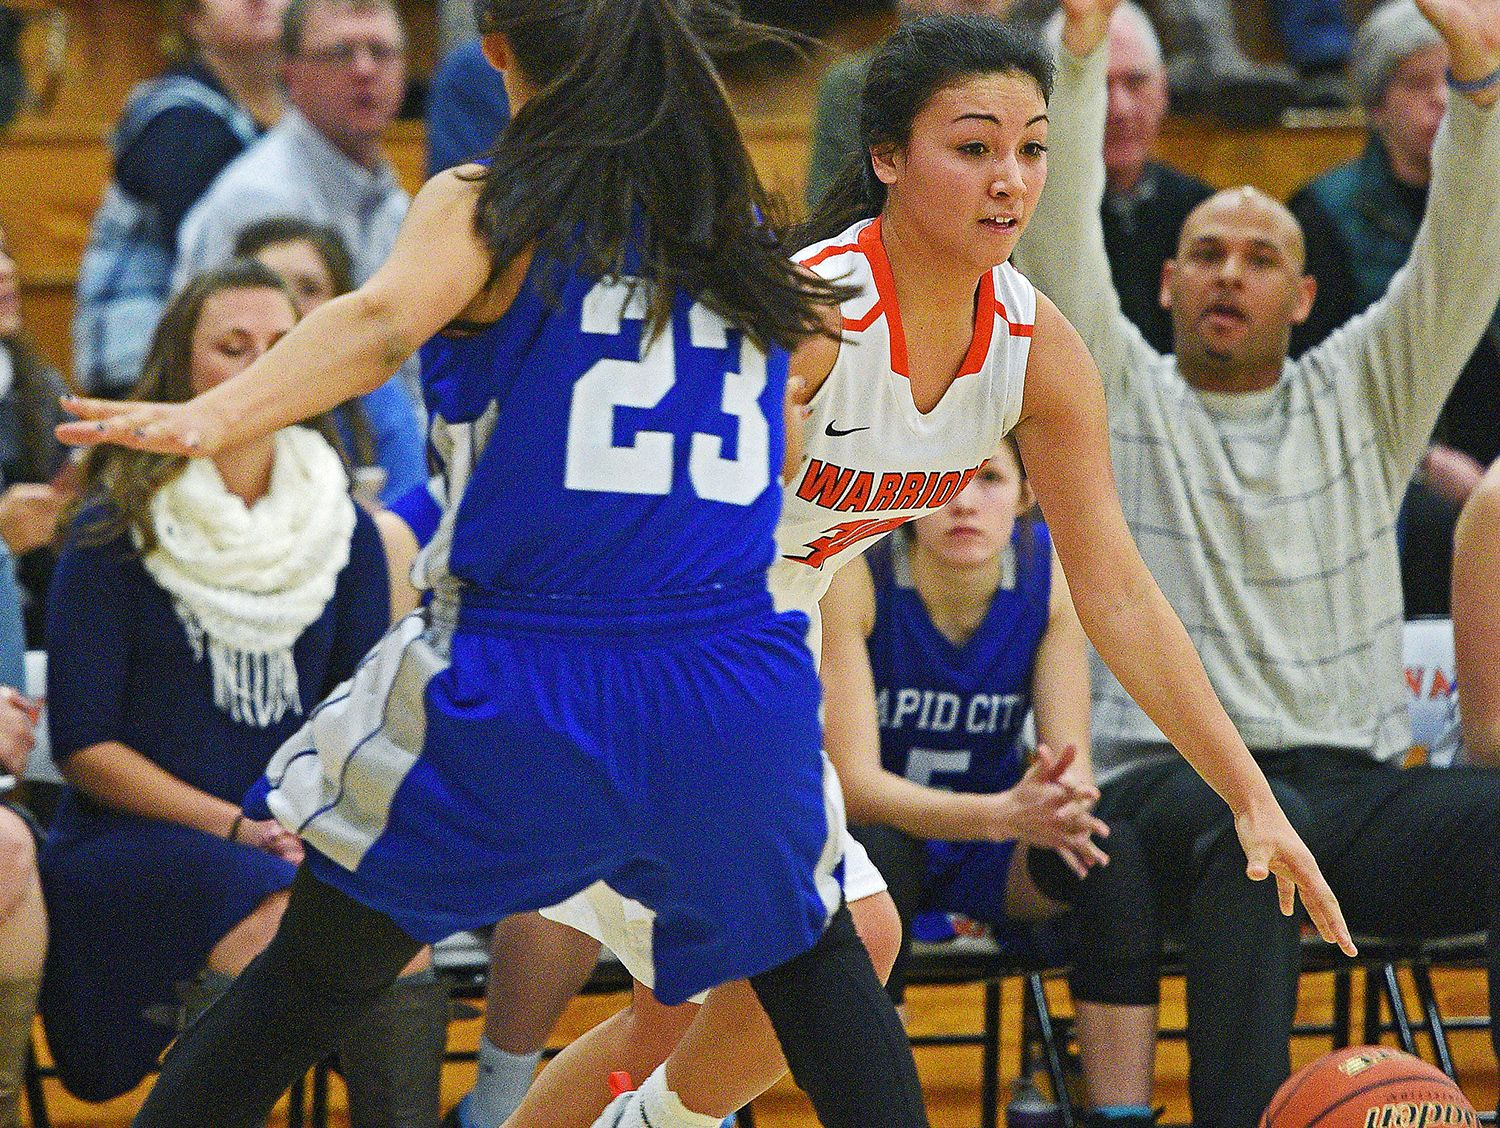 Washington's Taylor VanderVelde (30) tries to get past Rapid City Stevens' Lexus Eagle Chasing (23) during a game Friday, Feb. 10, 2017, at Washington High School in Sioux Falls.